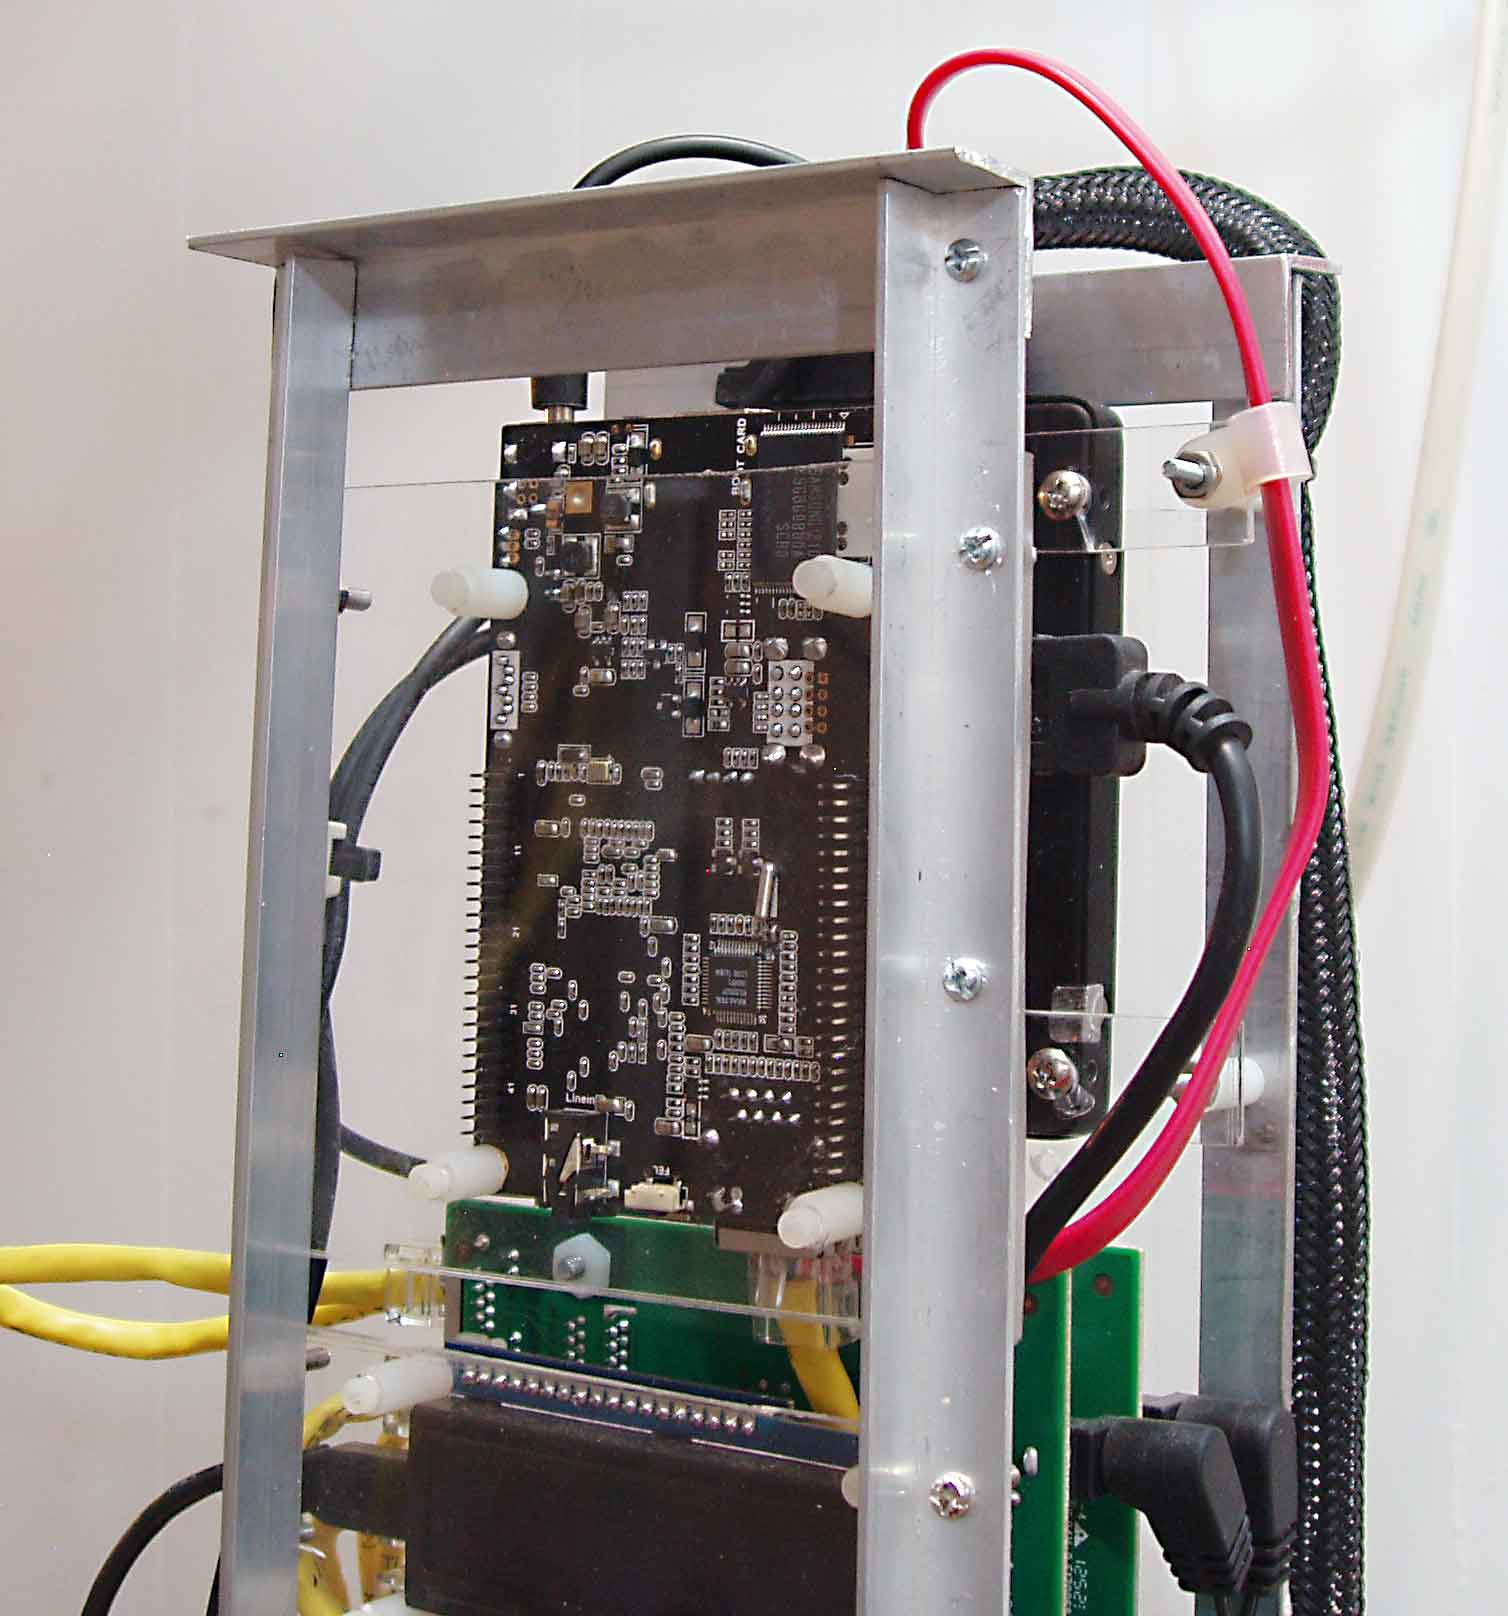 Tower Of Pi Project Terminus Usb Hub Buy Electronic Printed Circuit Boardboard Hubcircuit I Also Had To Repair An Intermittent Cable Between The Two Gig E Switches Note That Cross Connect Port Status Led Should